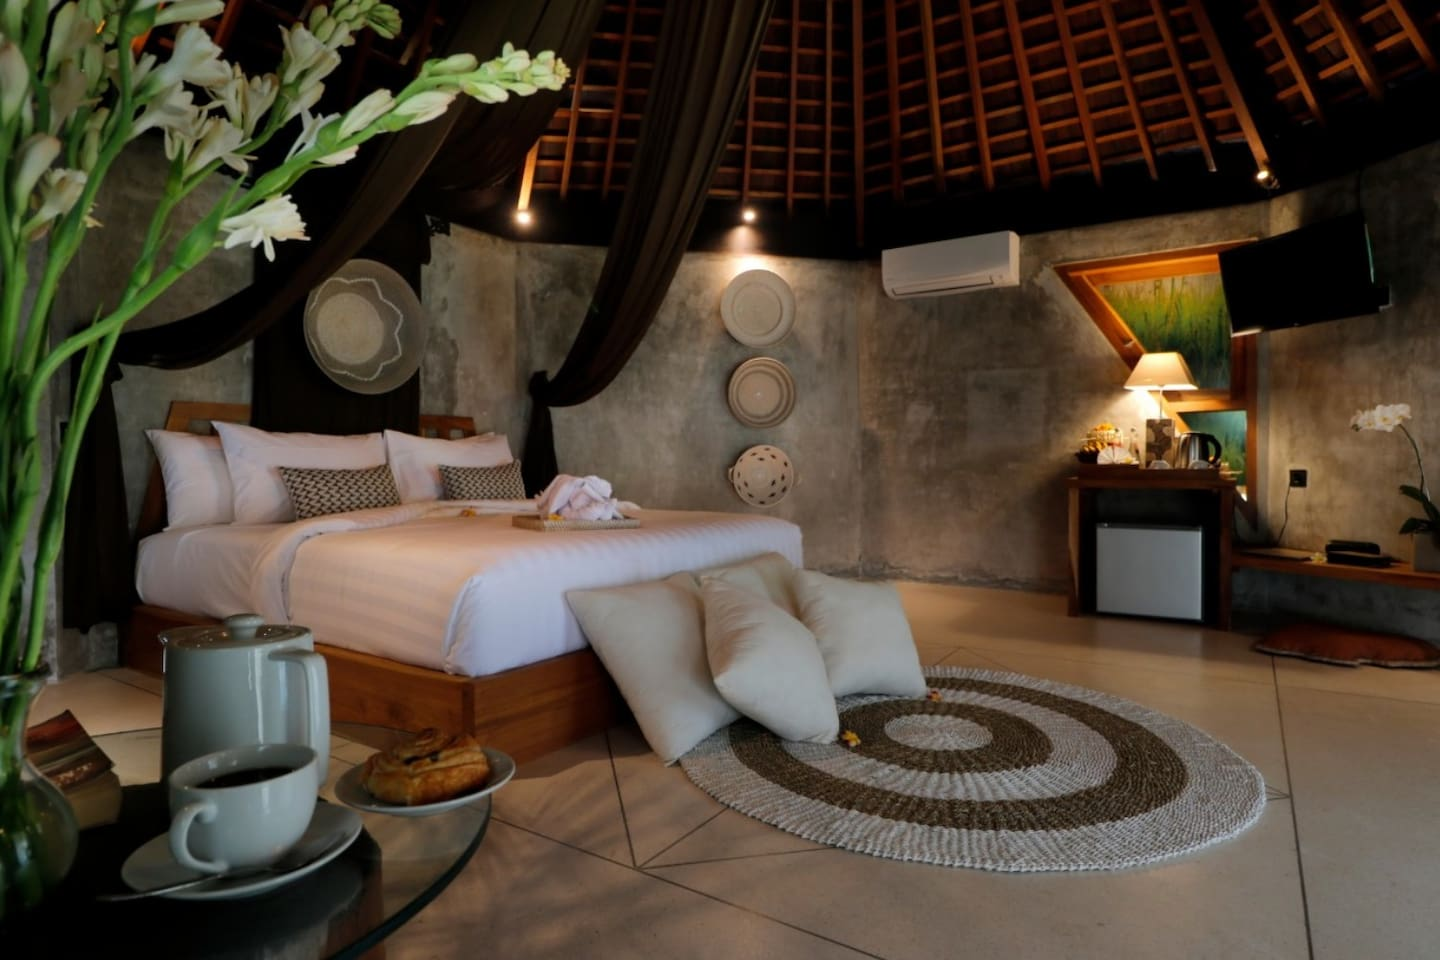 The Sender Pool Suite is a modern tropical pool suite boasting a great location in Jalan Bisma, Ubud